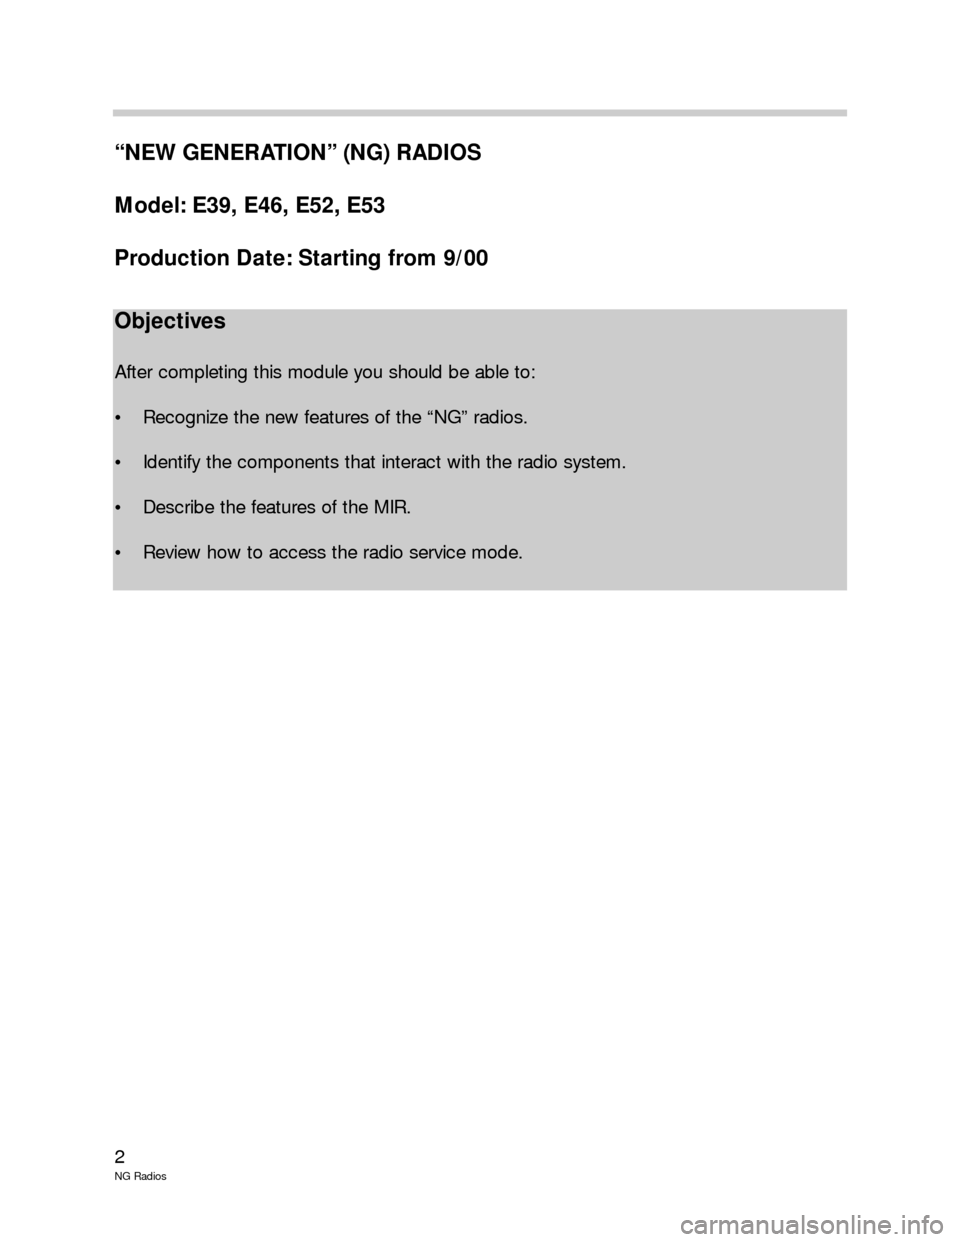 BMW 5 SERIES 2001 E39 New Generation Radios Manual, Page 2